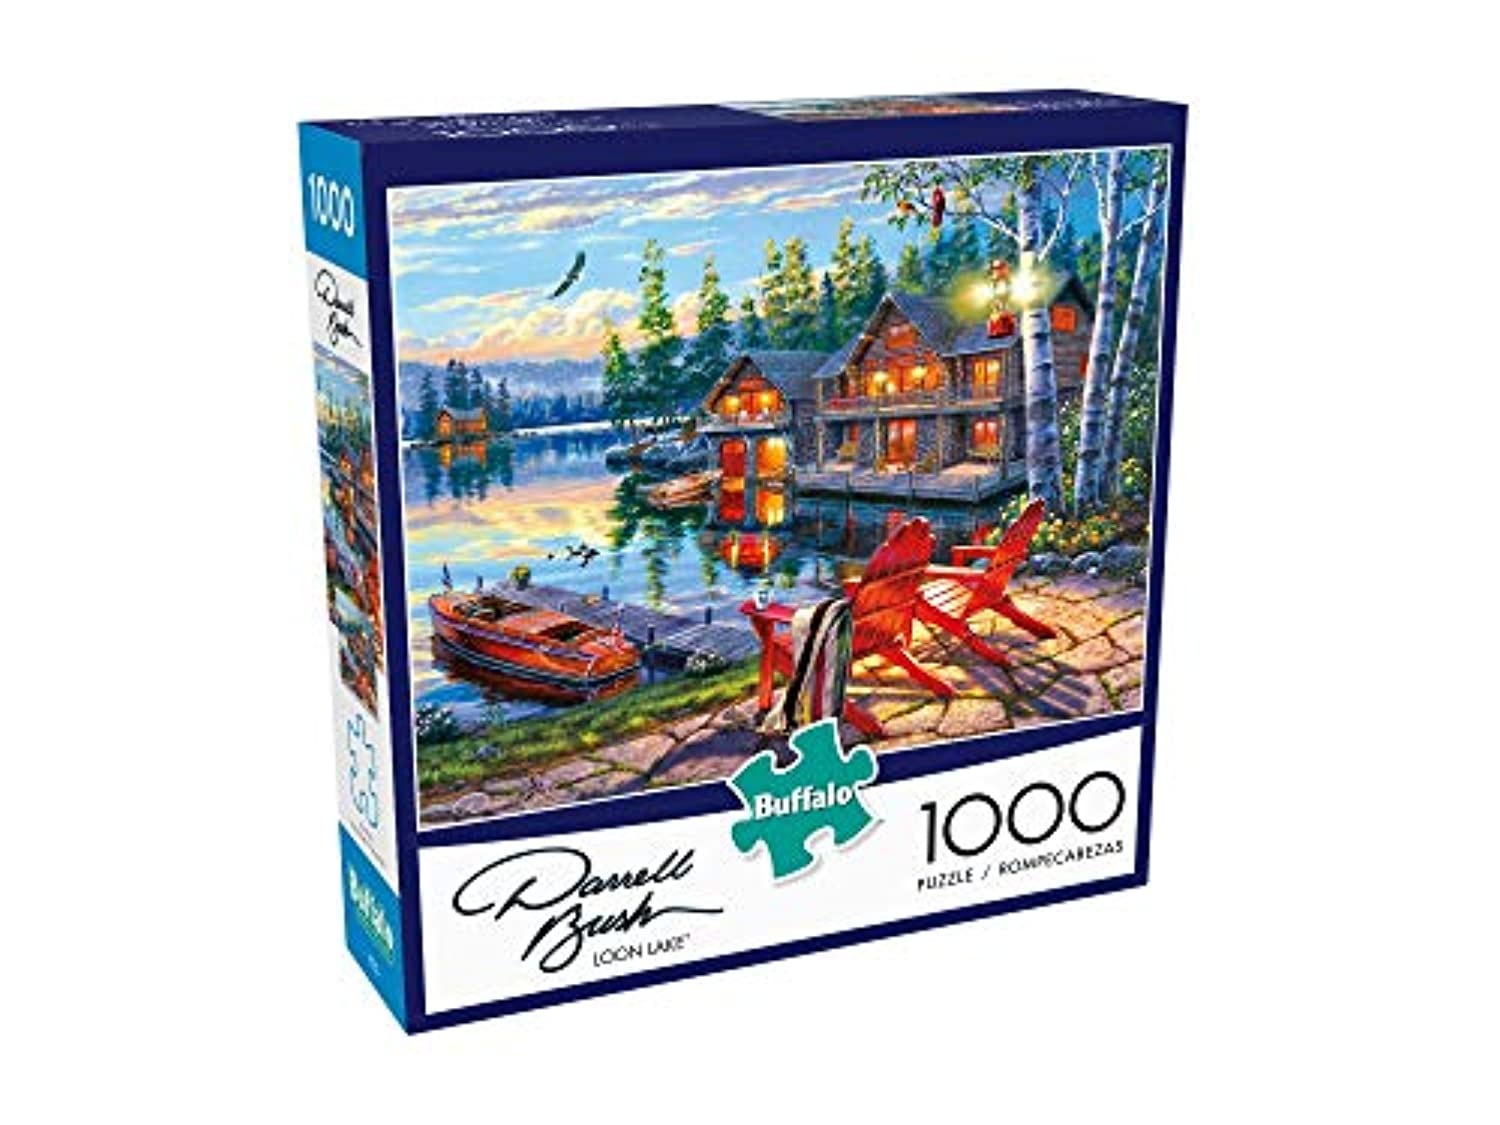 Classier: Buy Buffalo Games Buffalo Games - Darrell Bush - Loon Lake - 1000 Piece Jigsaw Puzzle